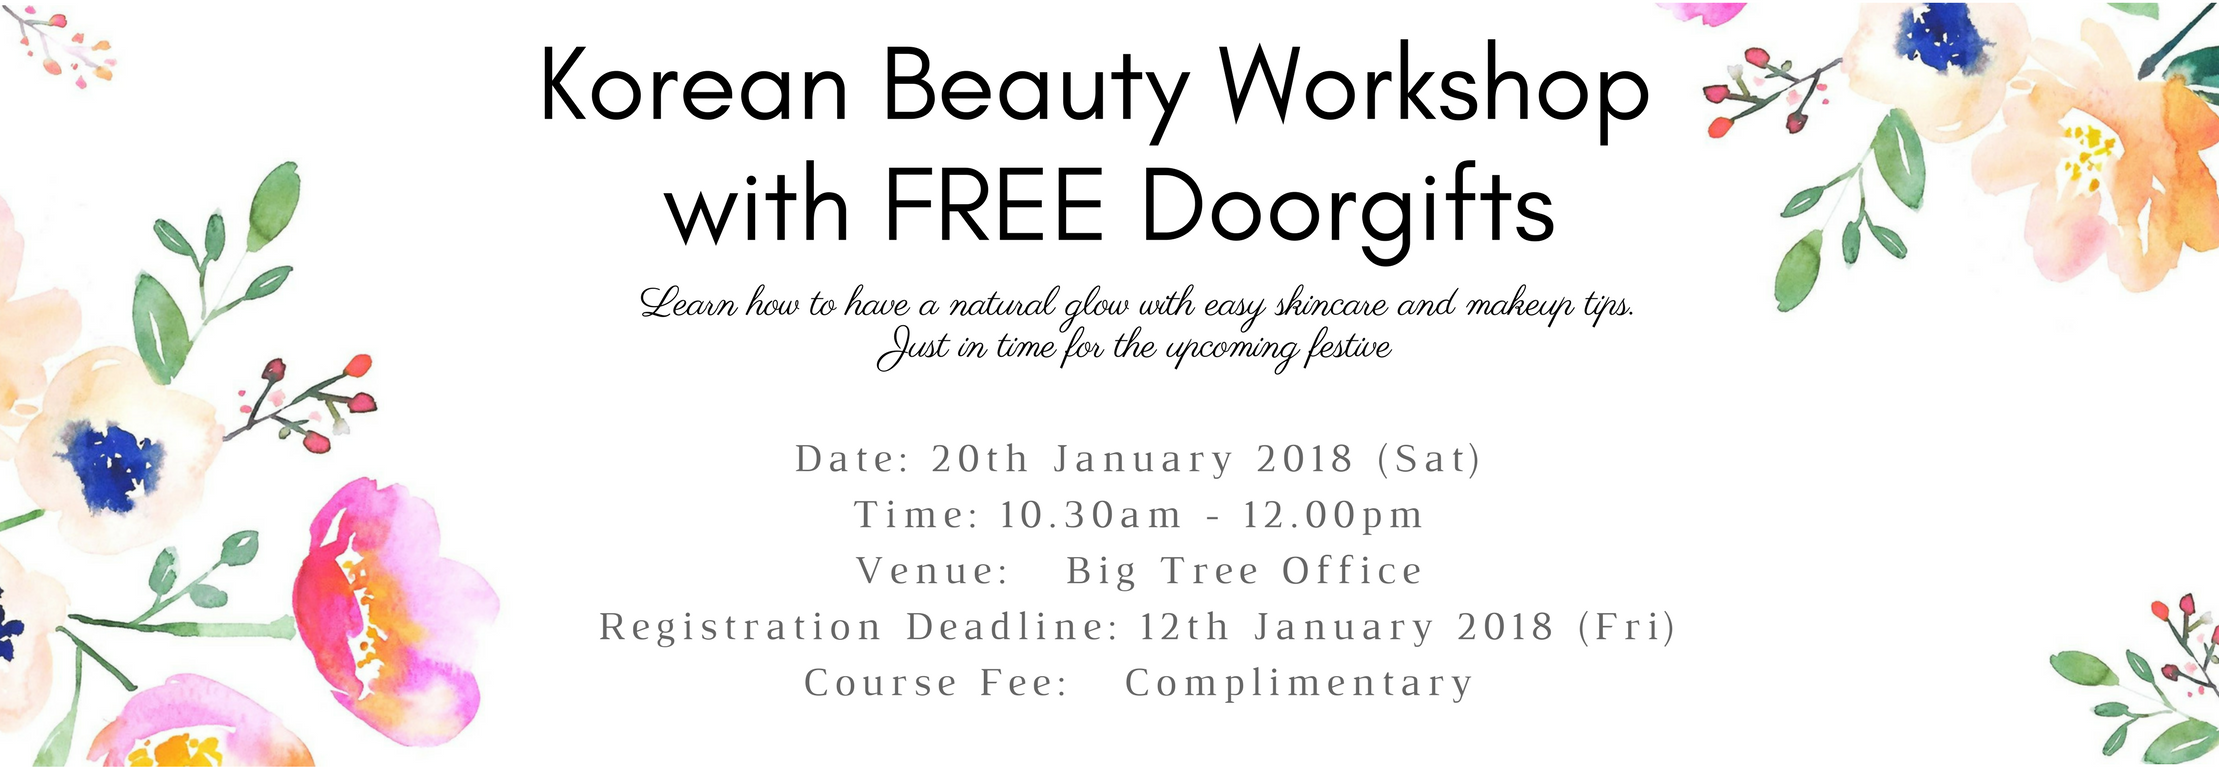 Korean Beauty Workshop with FREE Doorgifts